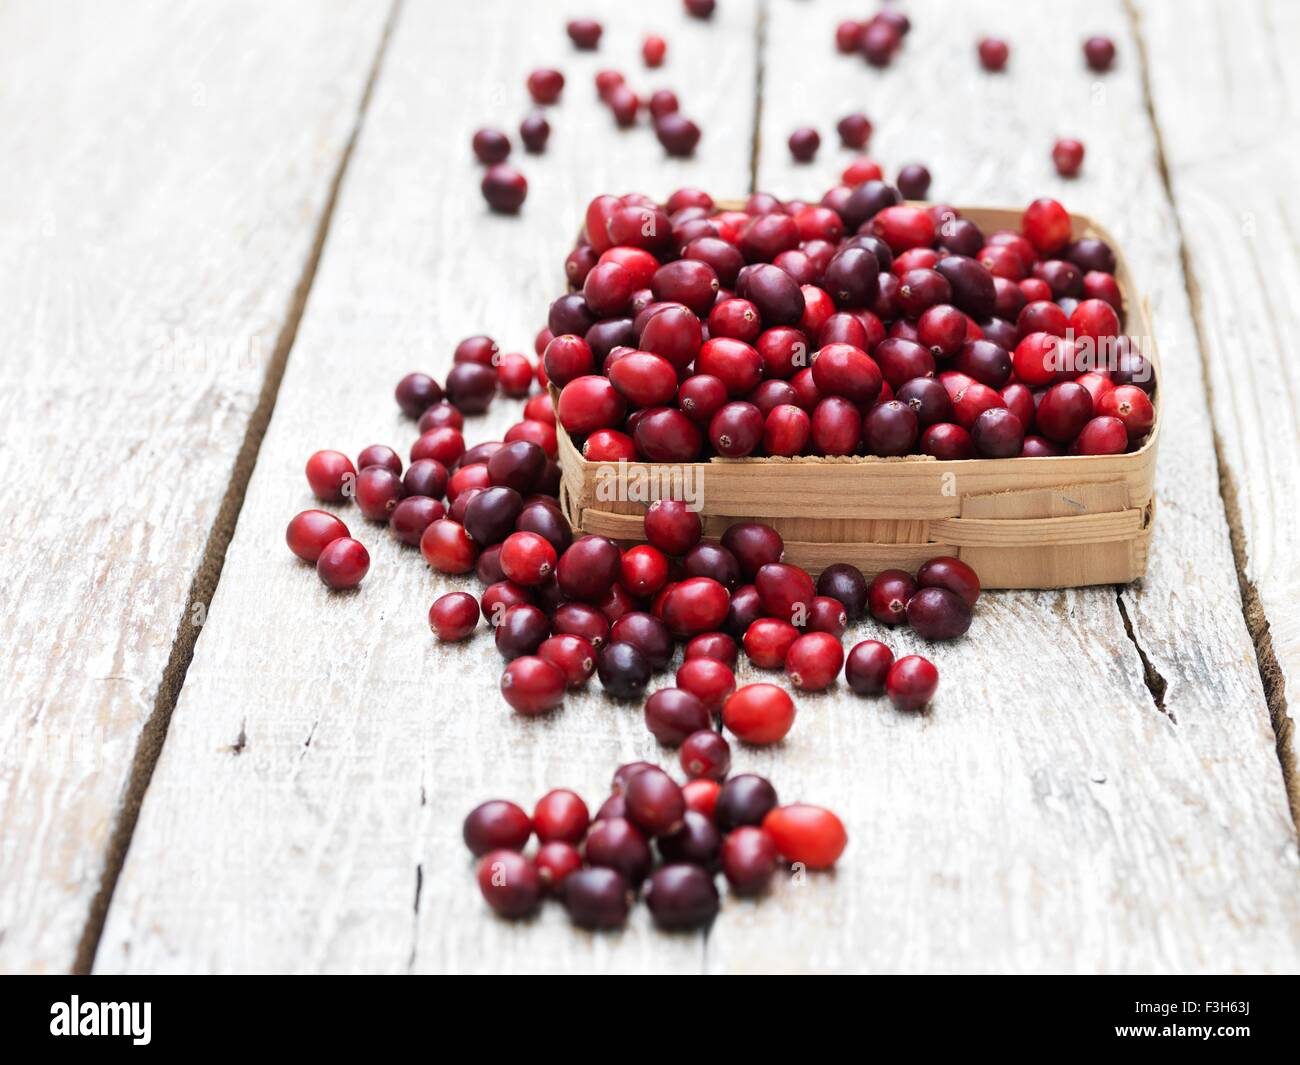 Cranberries in vintage crate on whitewashed wooden table - Stock Image